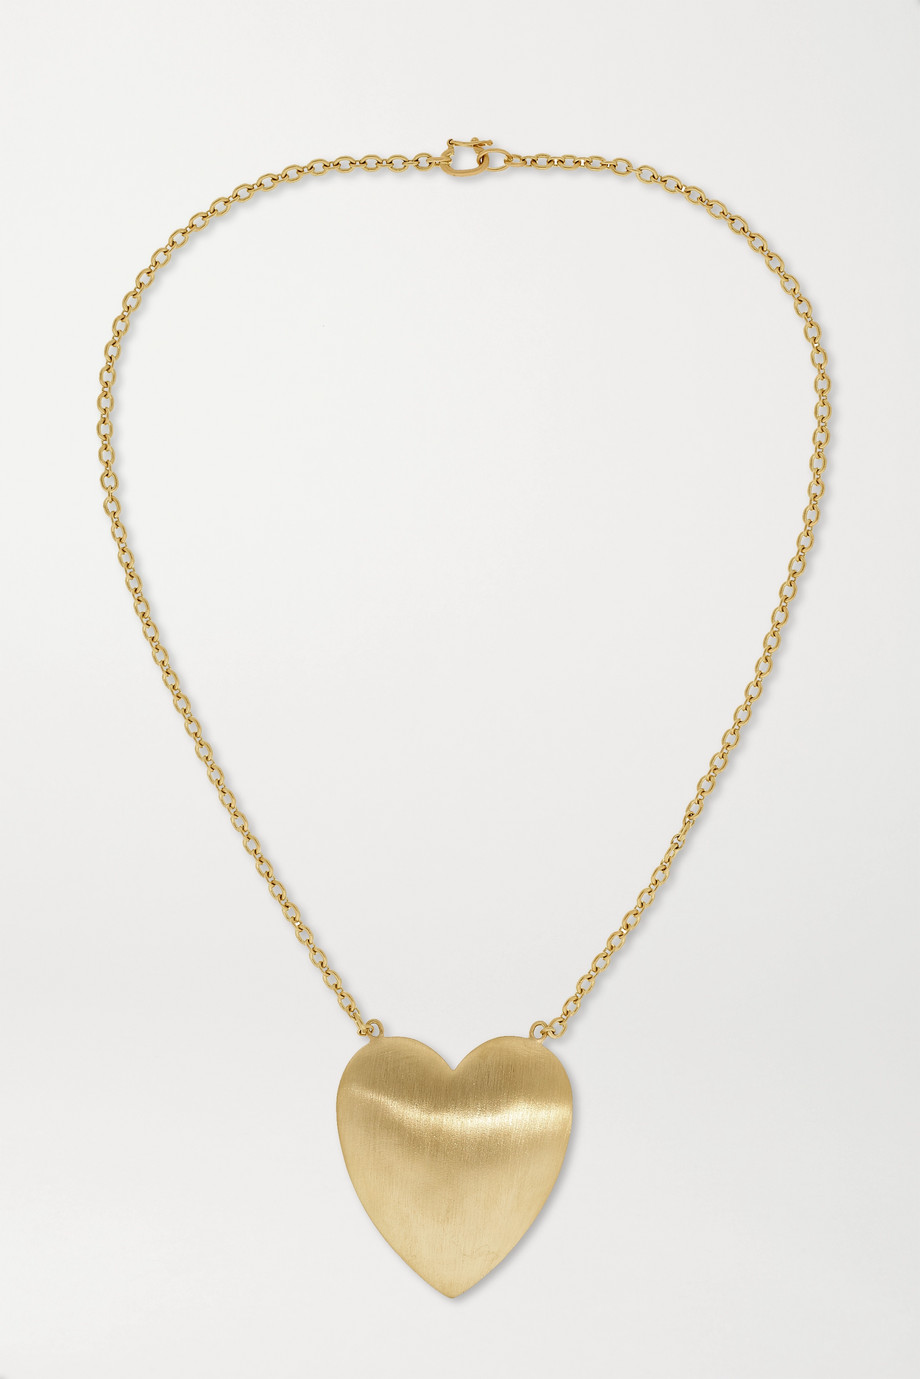 Irene Neuwirth Collier en or 18 carats Love